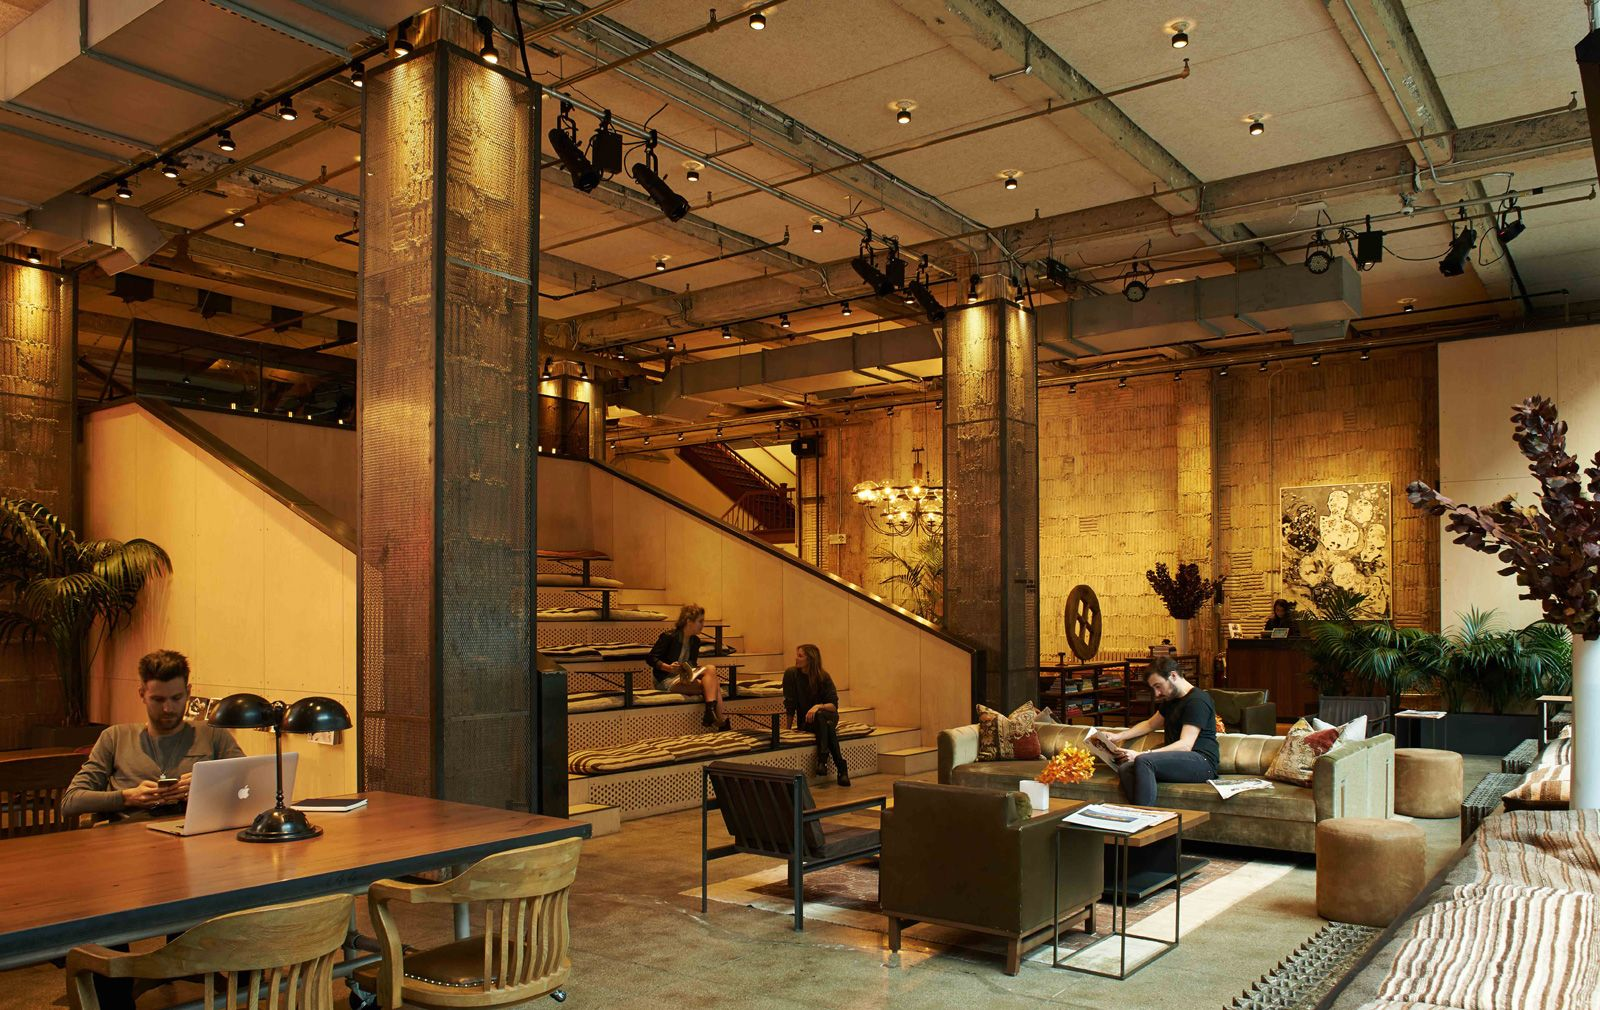 interiors of coworking space